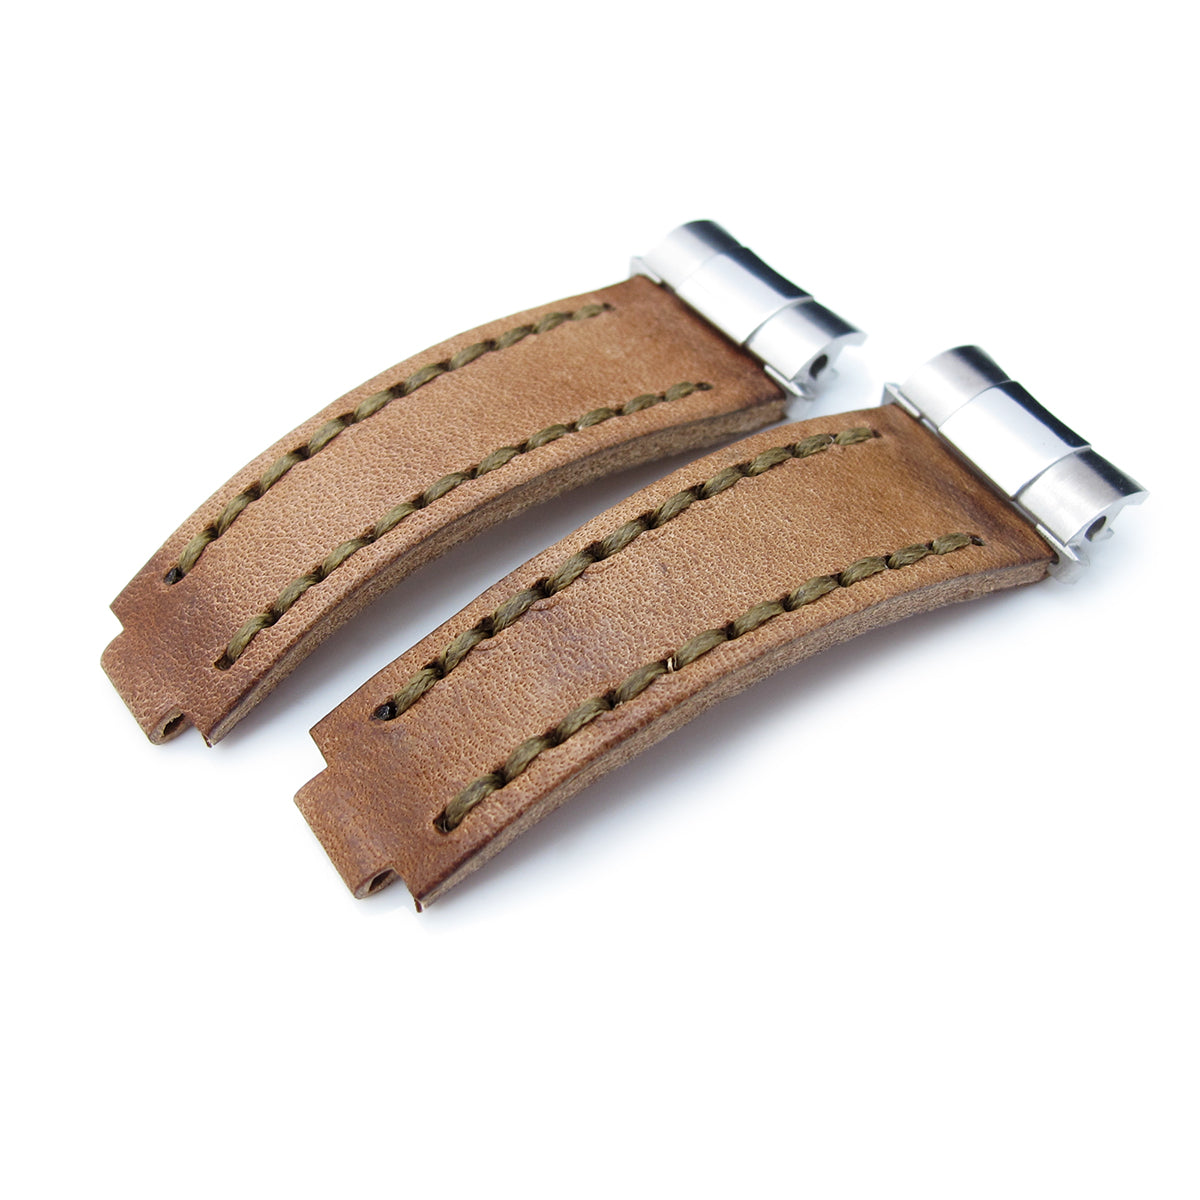 Revenge End Link Replacement Watch Strap Tailor-made for RX Matte Brown Pull Up Leather Military Green St. Strapcode Watch Bands